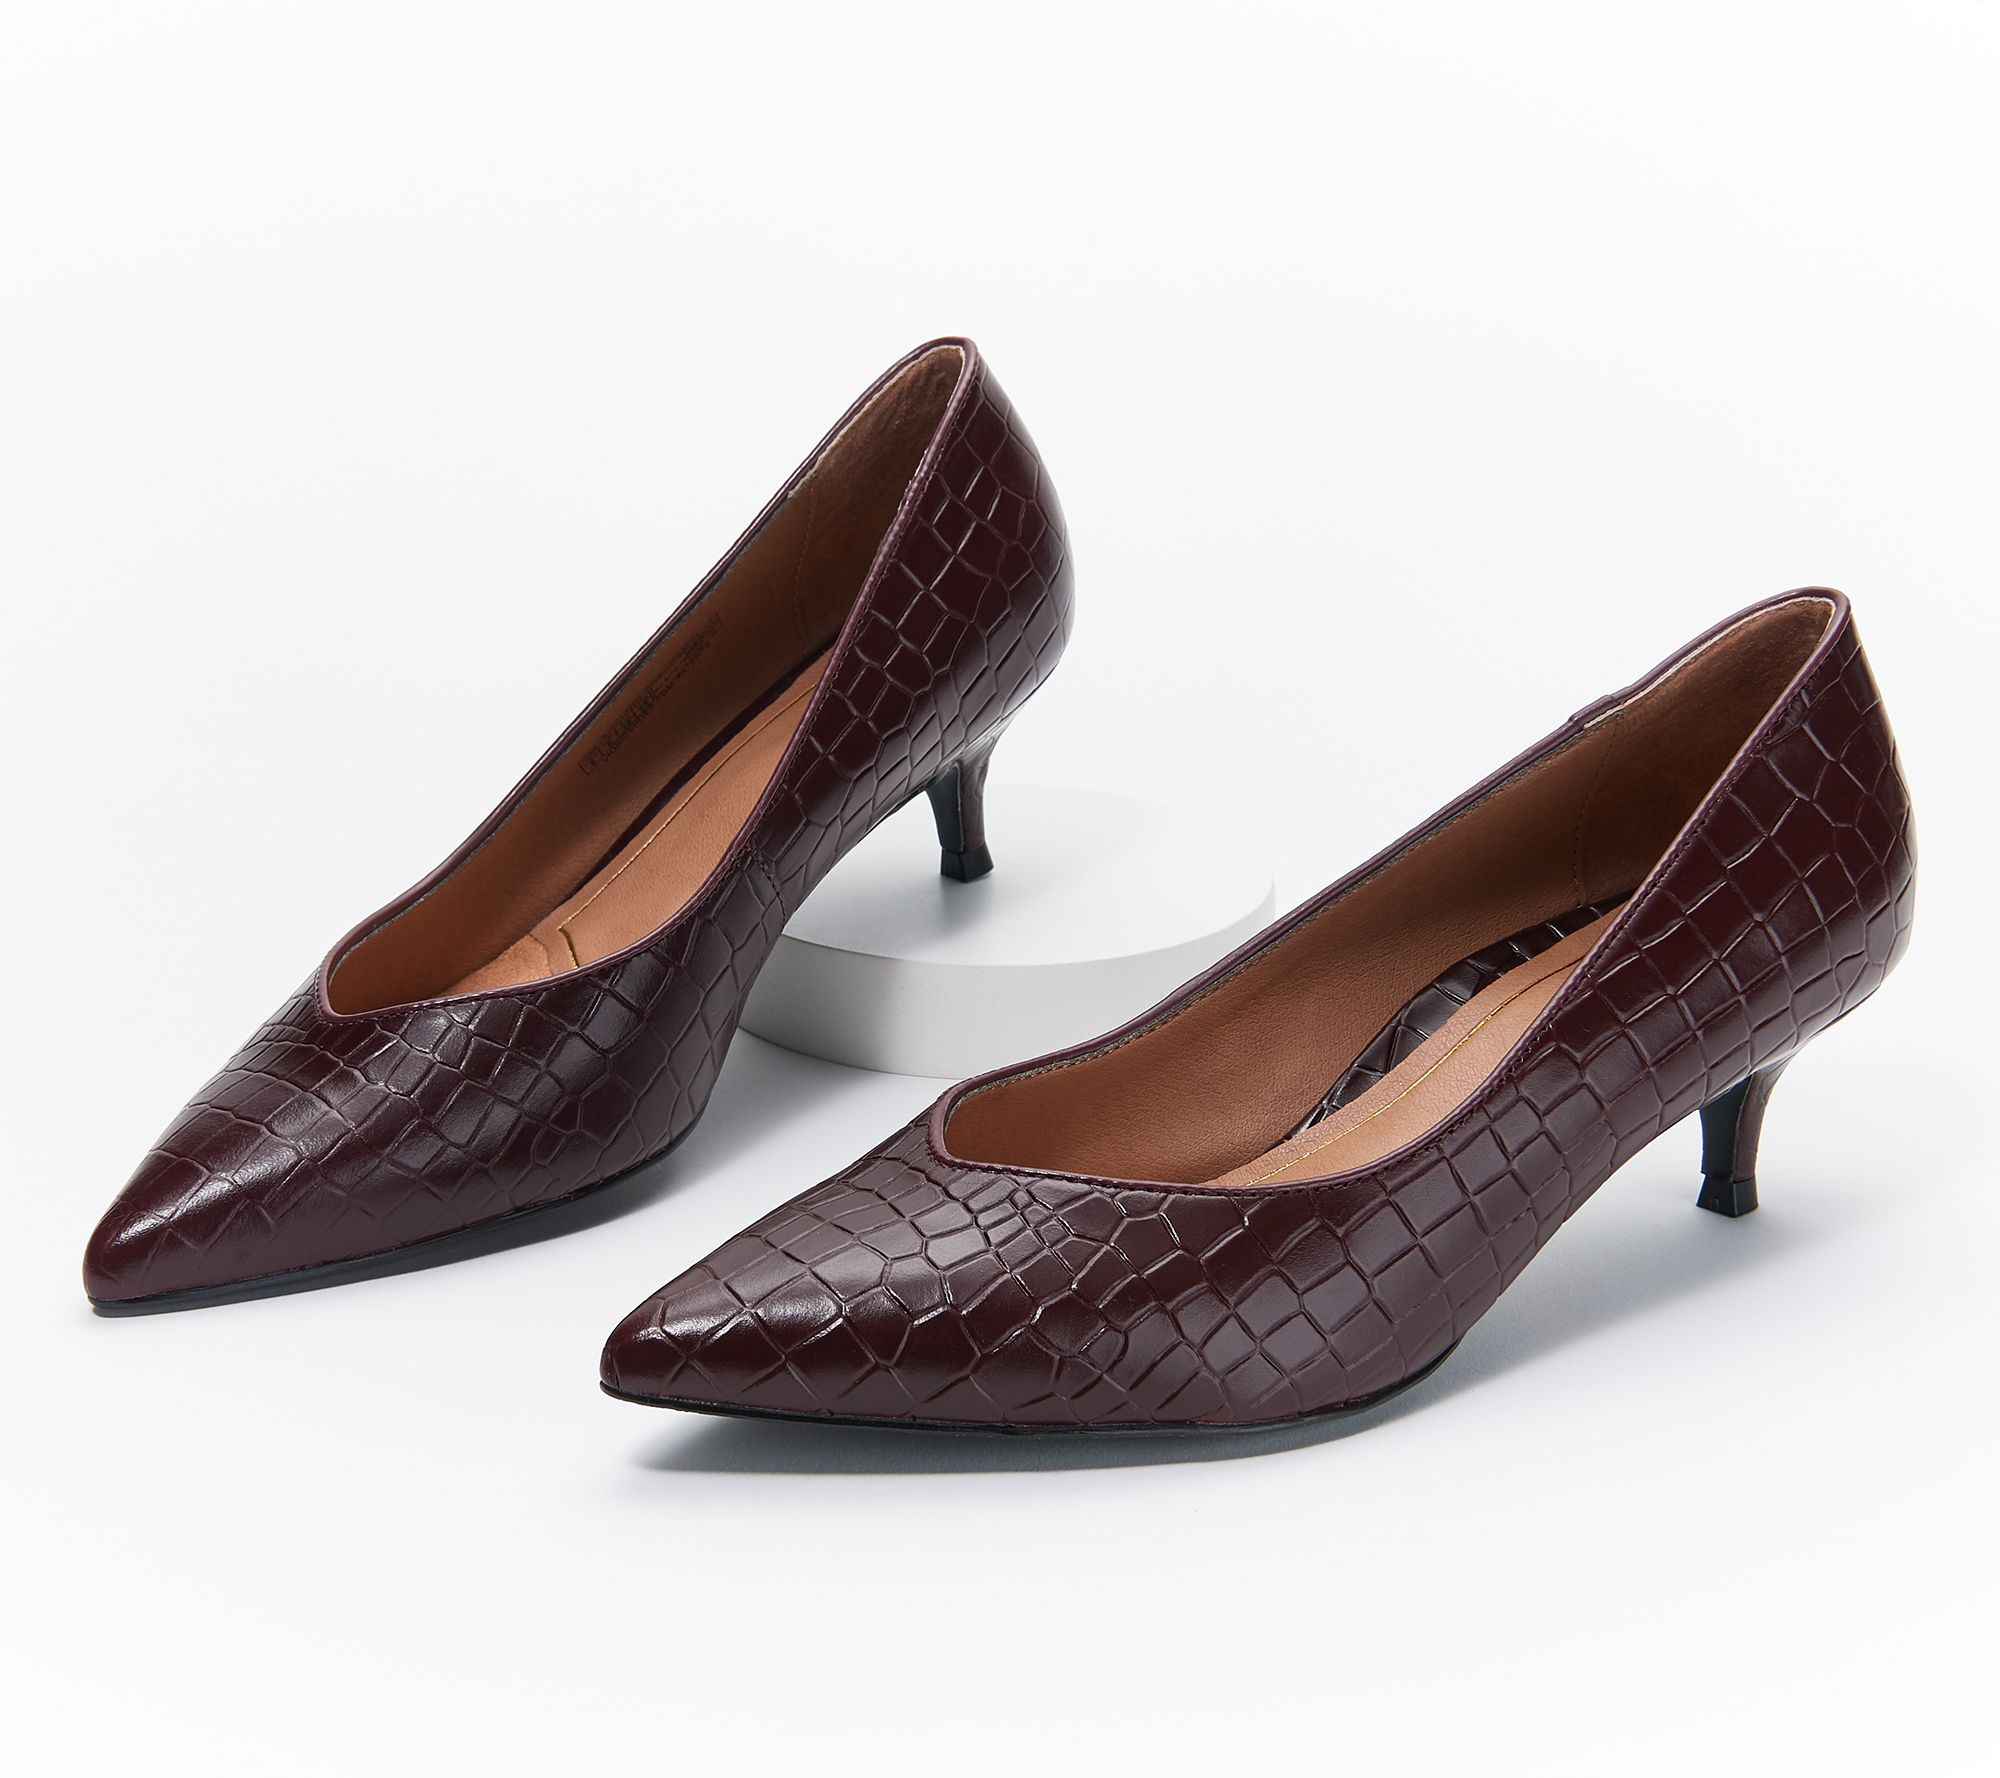 low priced on wholesale buying cheap Vionic Leather Kitten Heel Pumps - Josie Croc - Page 1 — QVC.com